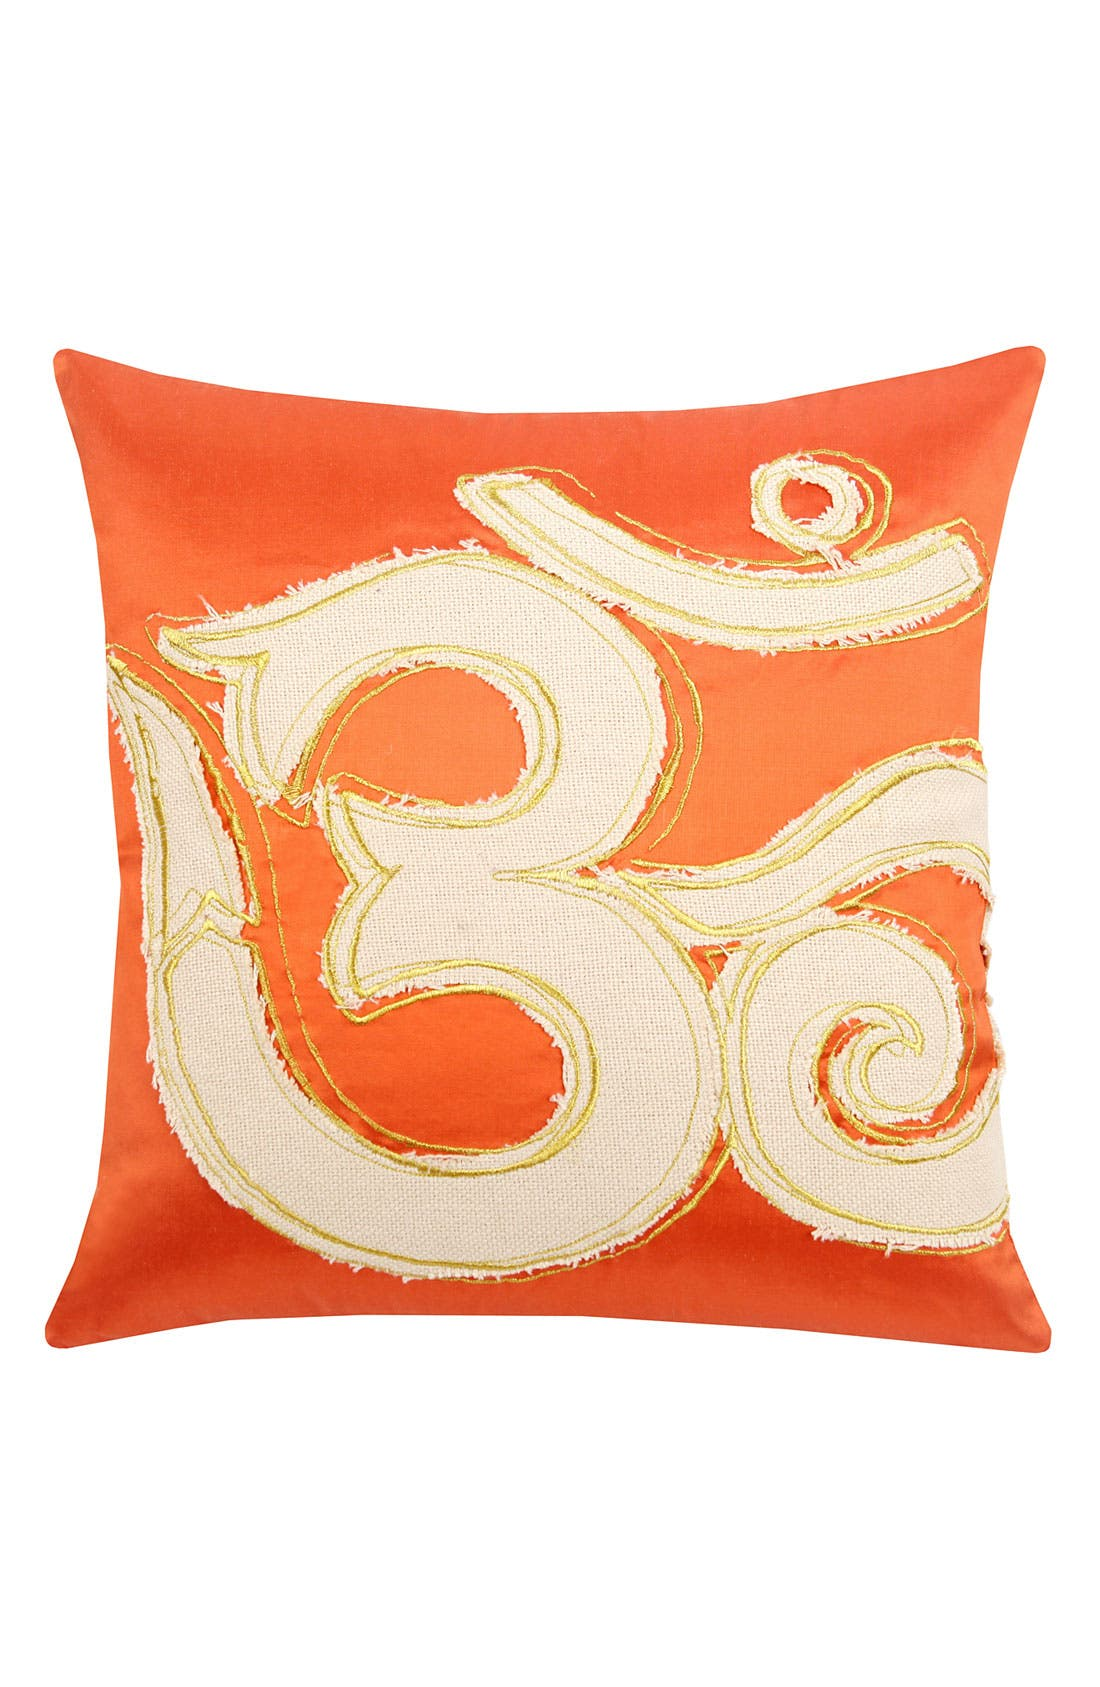 Alternate Image 1 Selected - Blissliving Home 'Om' Coral Pillow (Online Only)